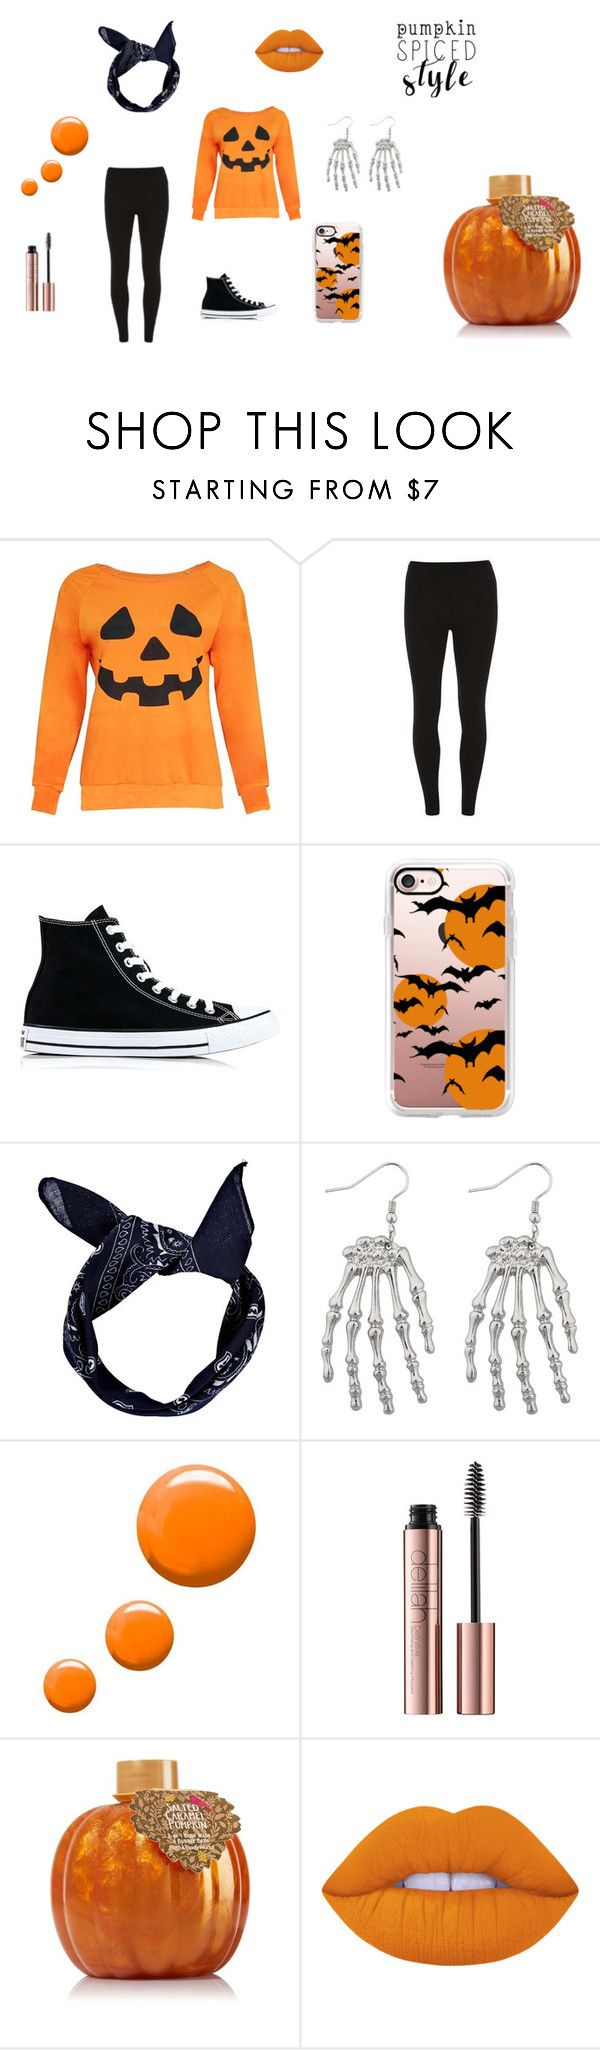 """pumpkin spiced style"" by iconeinconnu ❤ liked on Polyvore featuring Dorothy Perkins, Converse, Casetify, Boohoo, Topshop, Lime Crime, orange, pumpkin and bonbons"